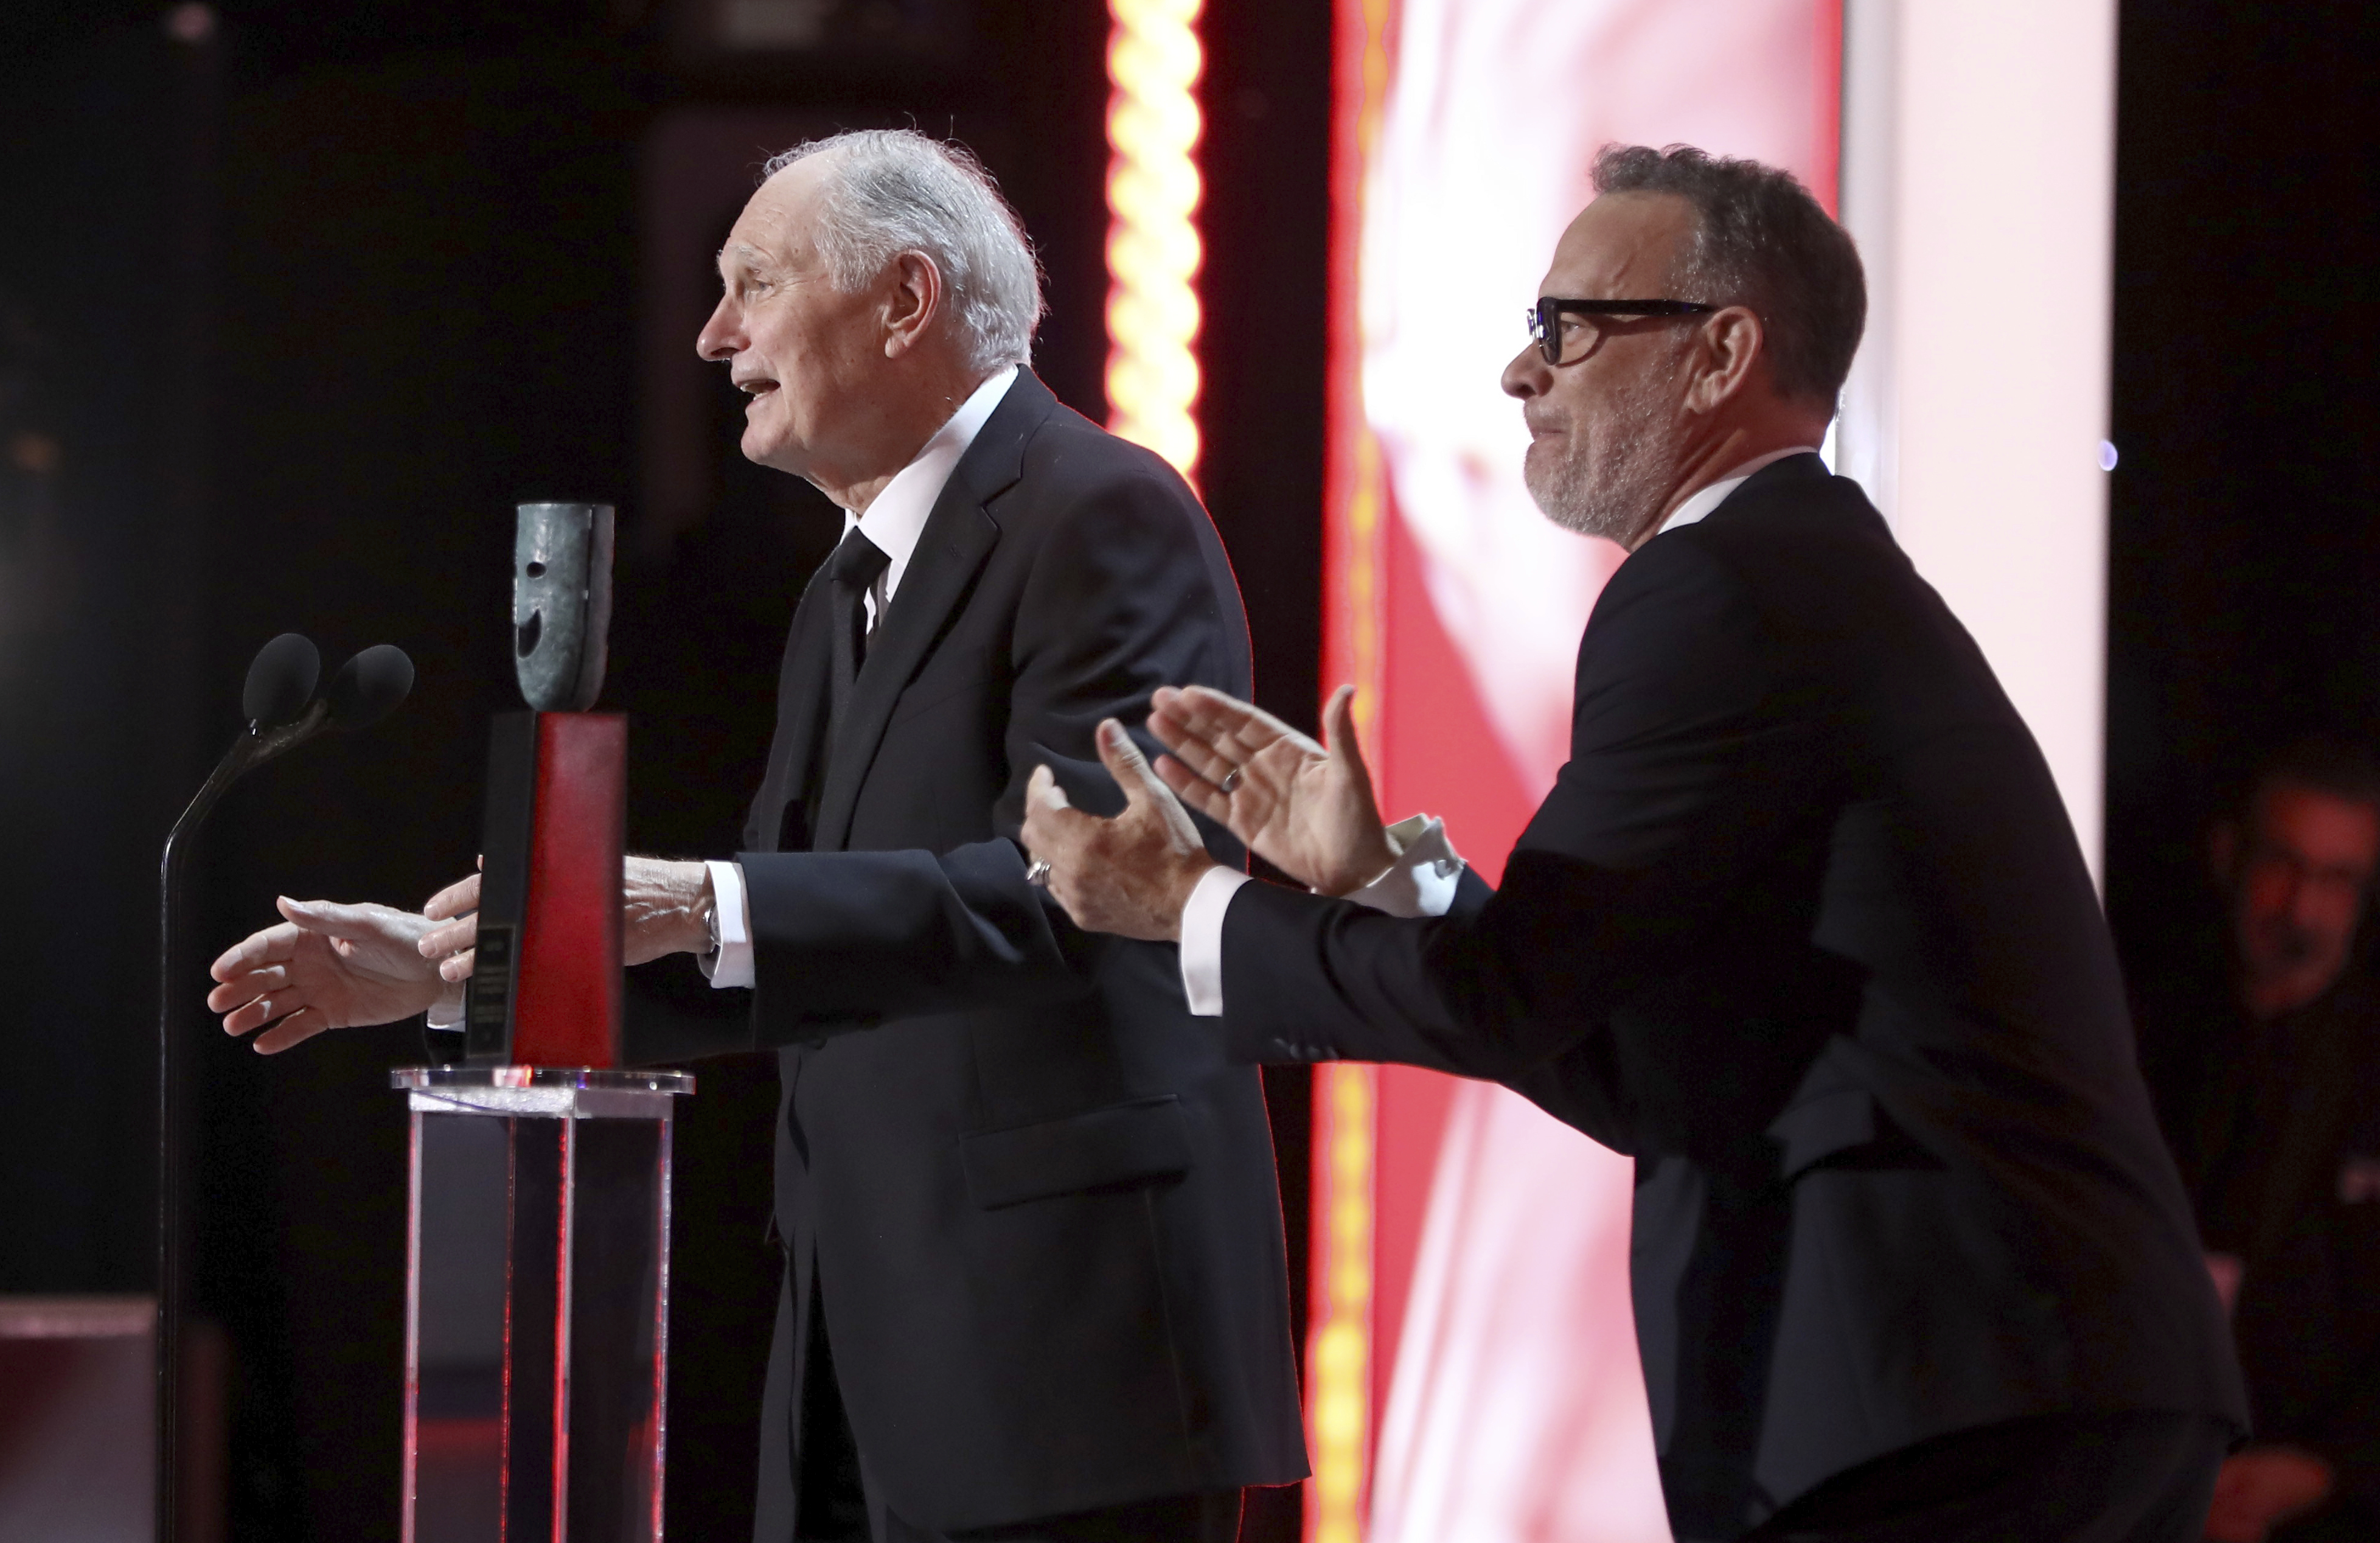 Alan Alda, left, accepts the Life Achievement award while Tom Hanks applauds at the 25th annual Screen Actors Guild Awards at the Shrine Auditorium & Expo Hall on Sunday, Jan. 27, 2019, in Los Angeles. (Photo by Matt Sayles/Invision/AP)